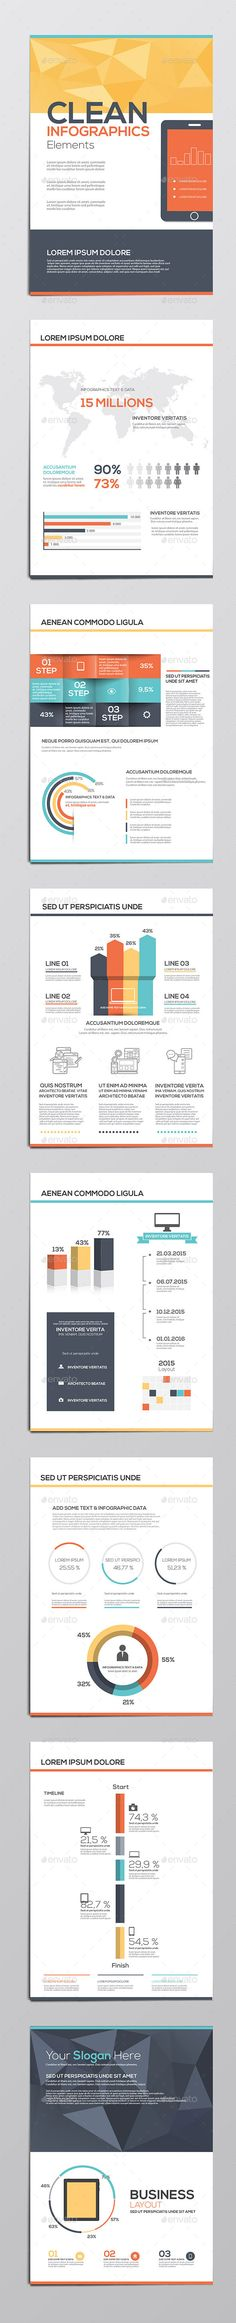 Business Infographics Elements — Vector EPS #corporate #information • Available here → https://graphicriver.net/item/business-infographics-elements/10314982?ref=pxcr